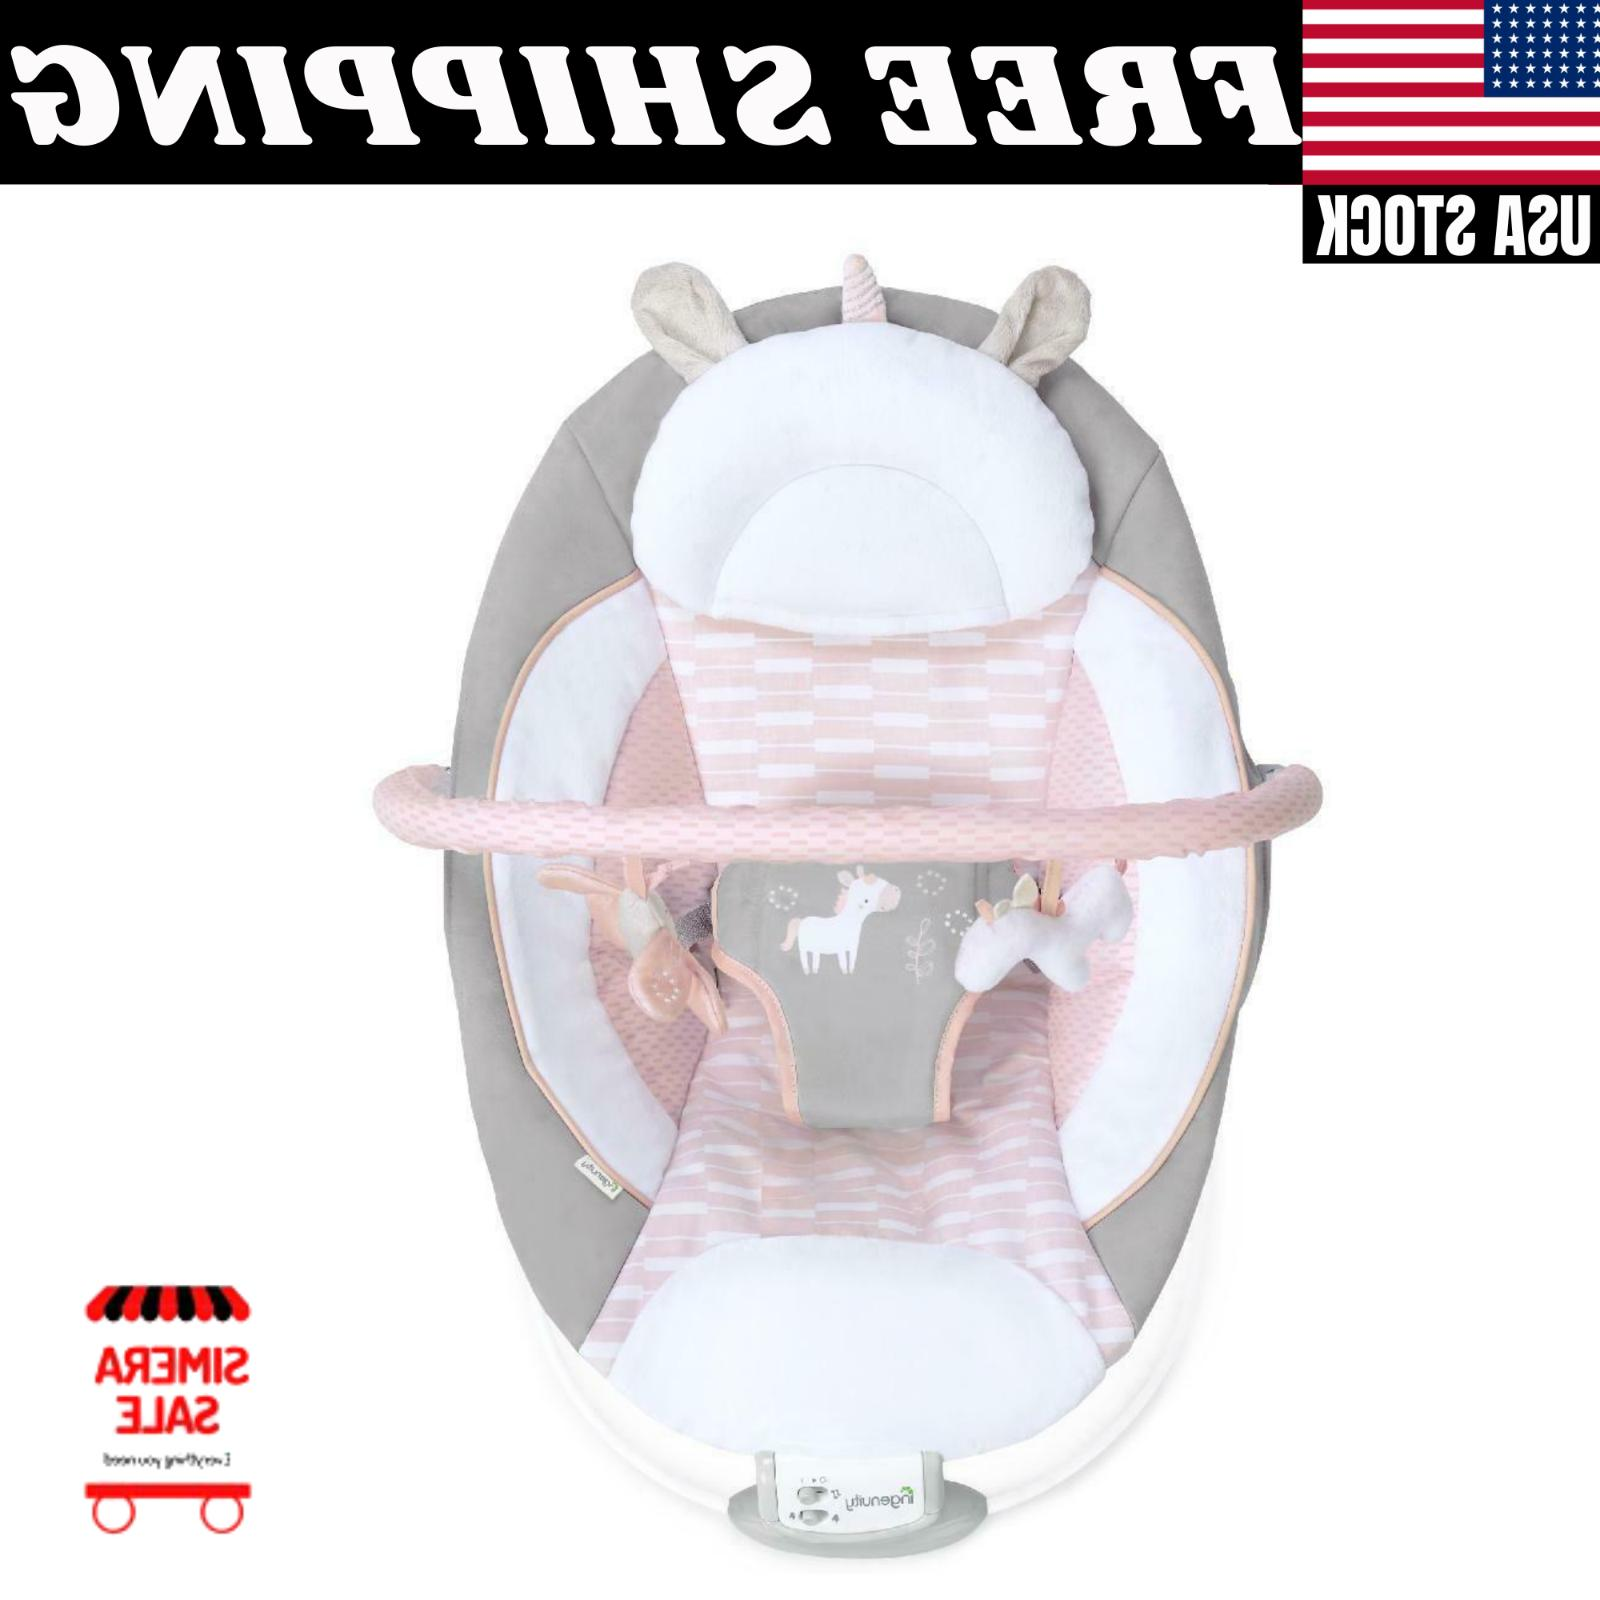 Cradling Bouncer - - Ultra-Plush Seat Baby Infant Vibration Chair